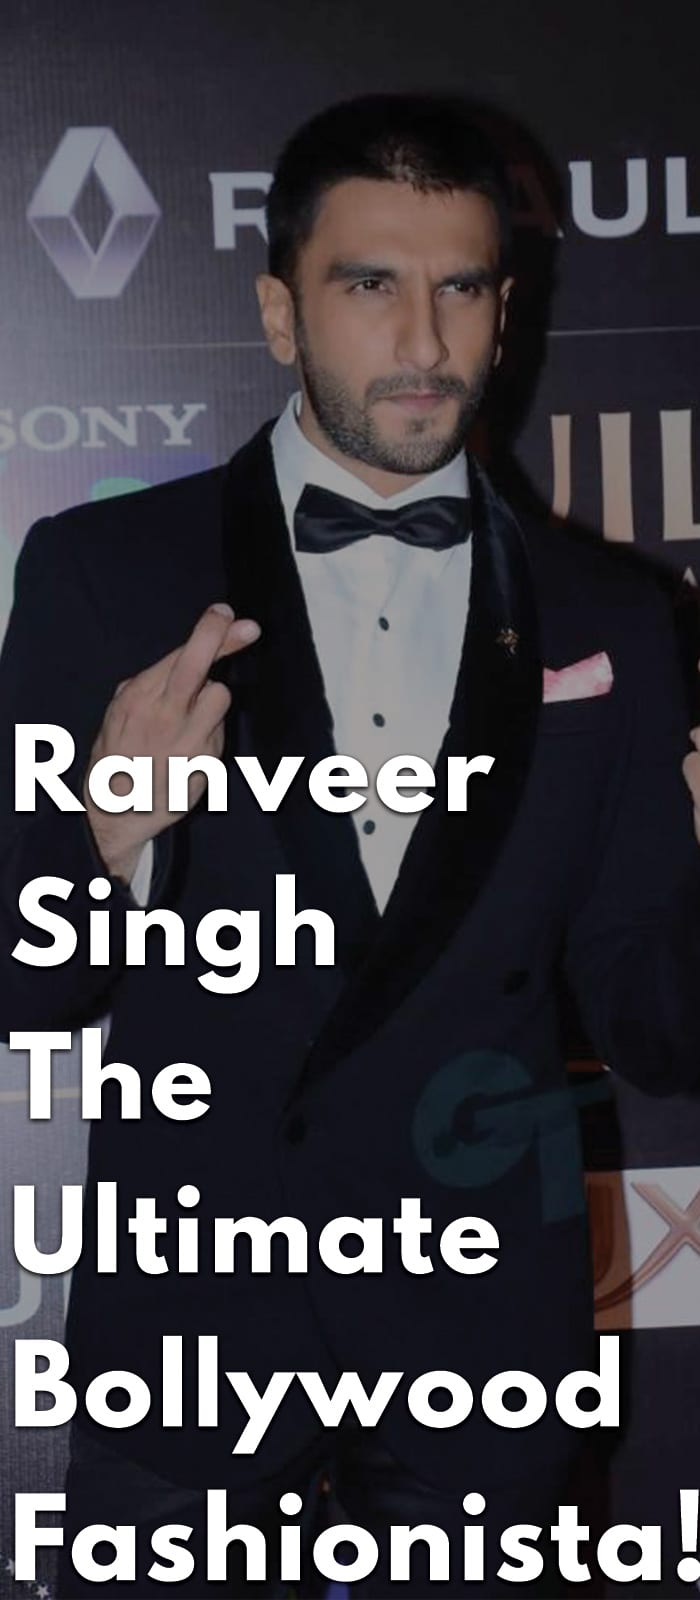 Ranveer-Singh-The-Ultimate-Bollywood-Fashionista!